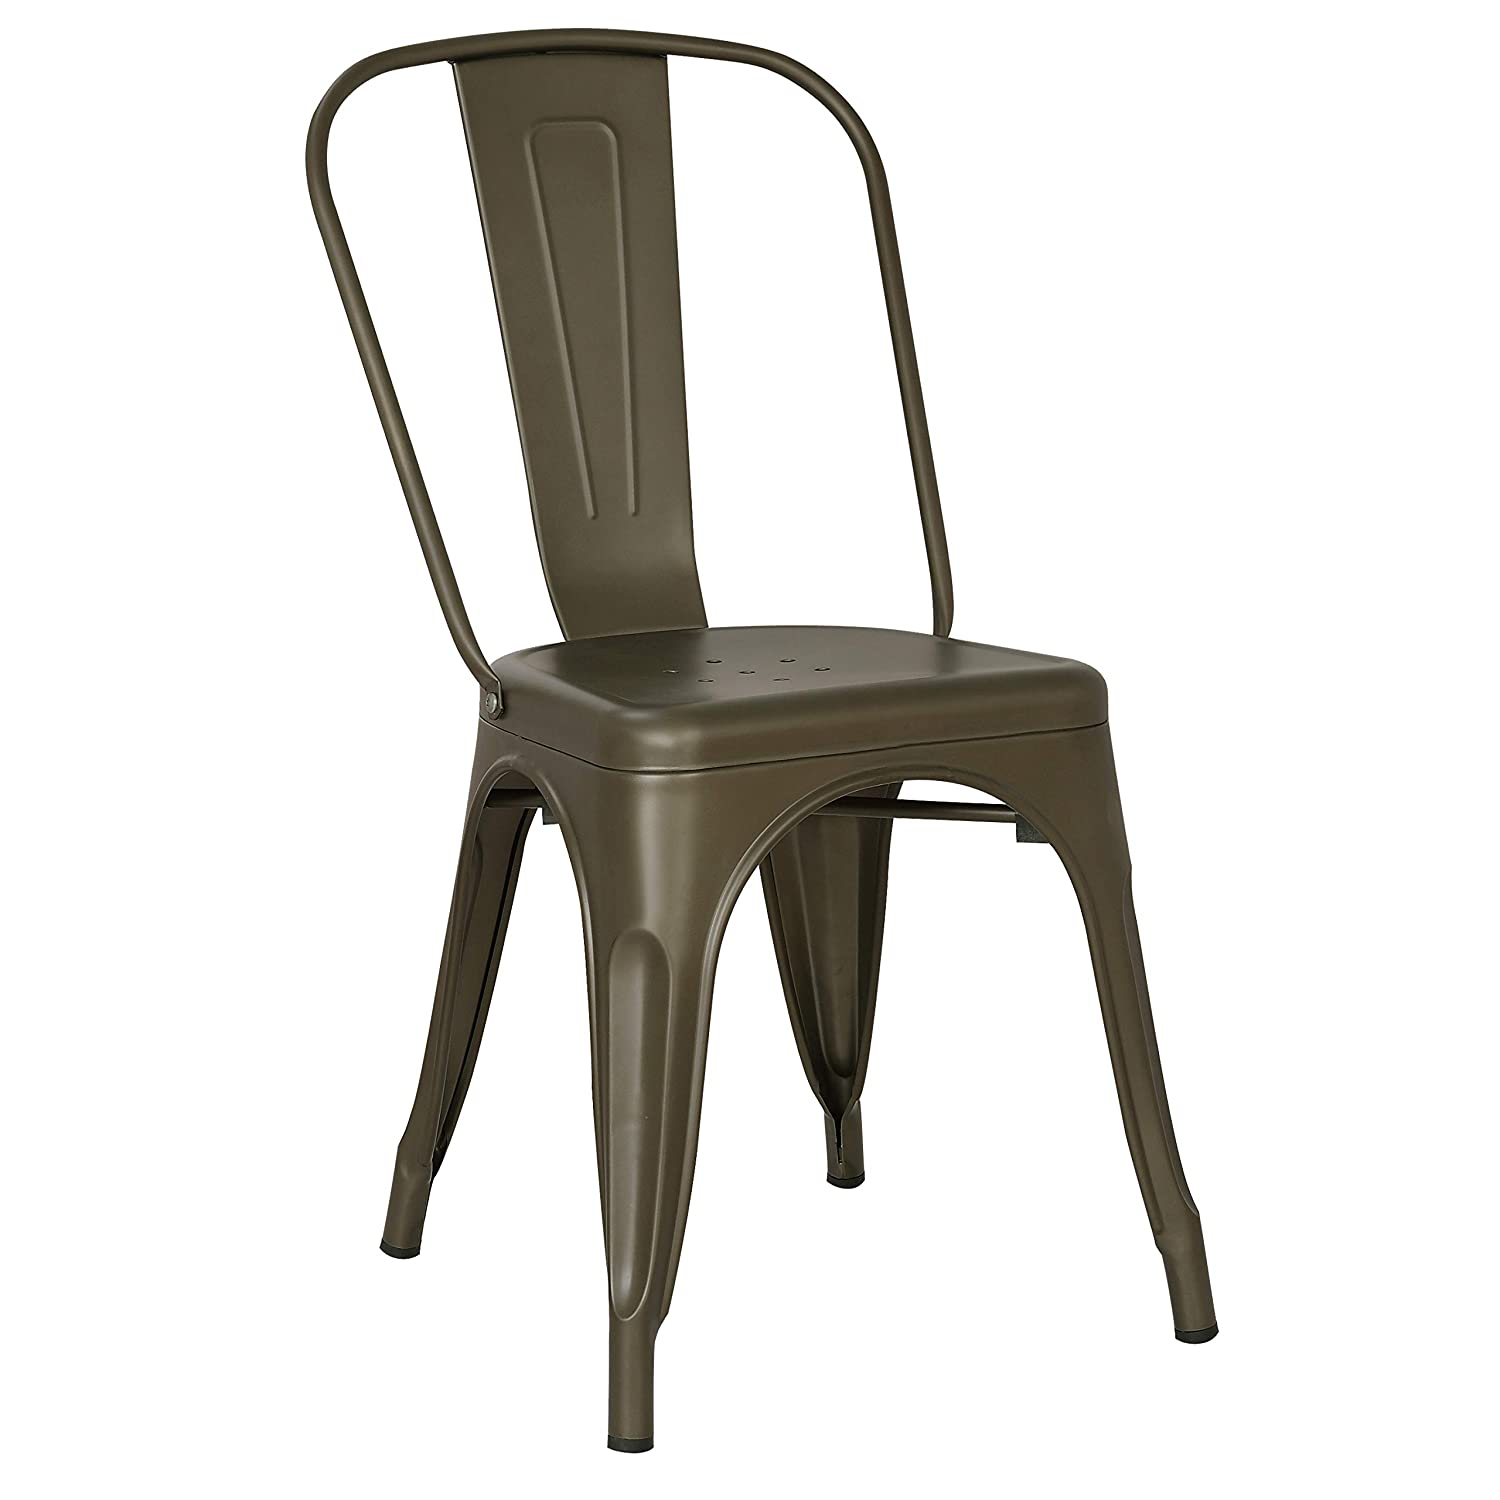 POLY BARK EM-112-BRZ-X4 Poly and Bark Trattoria Side Chair in Bronze Set of 4